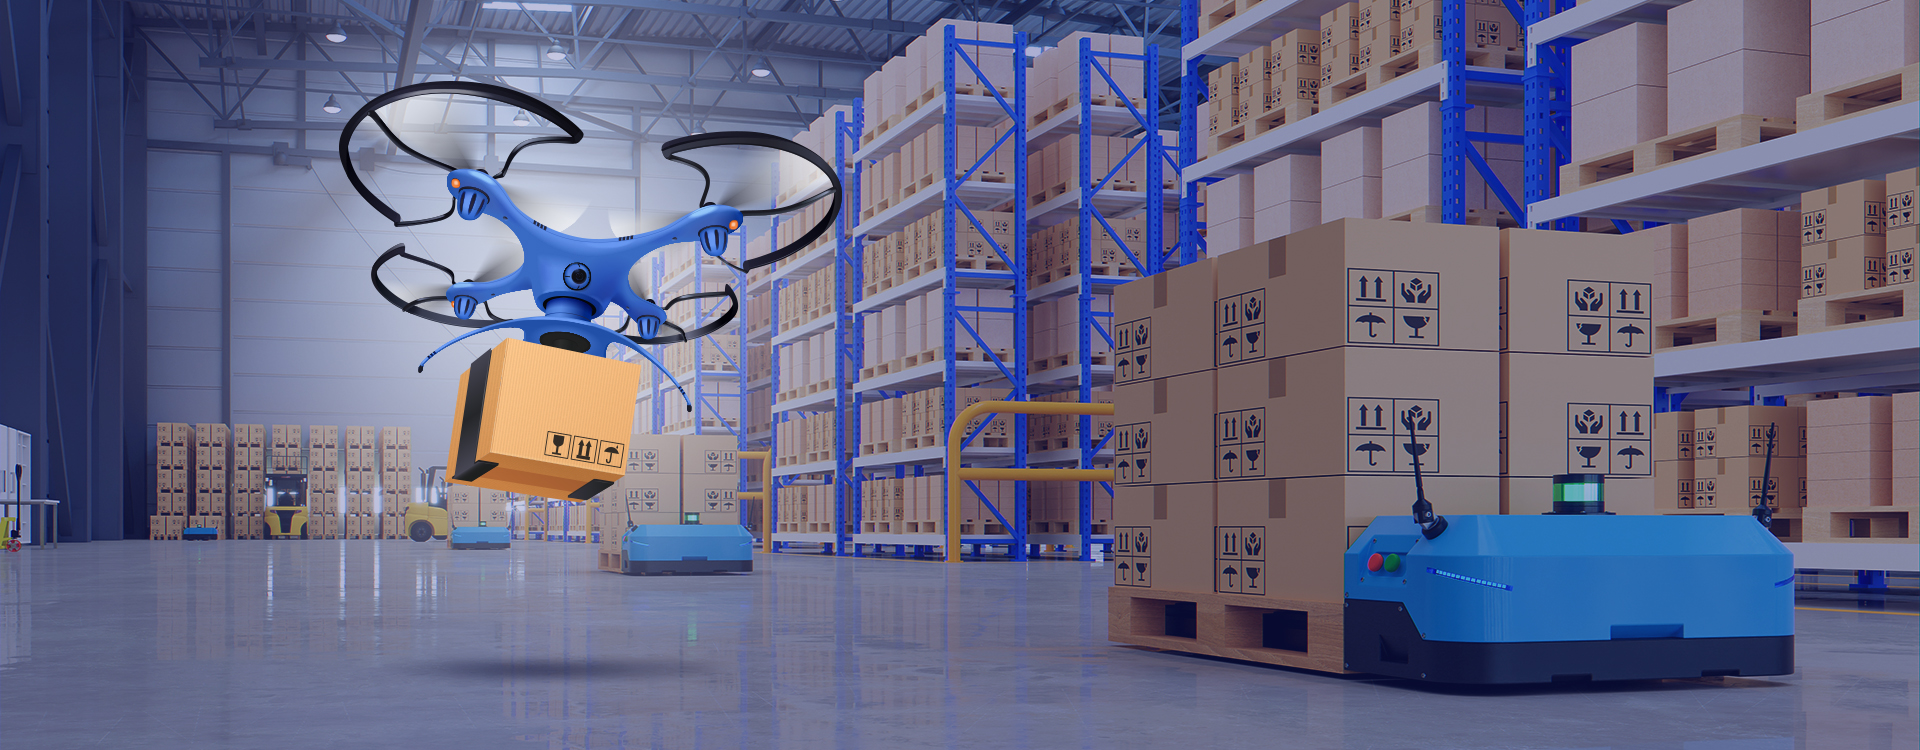 Logistics Industry in India AI Artificial Intelligence